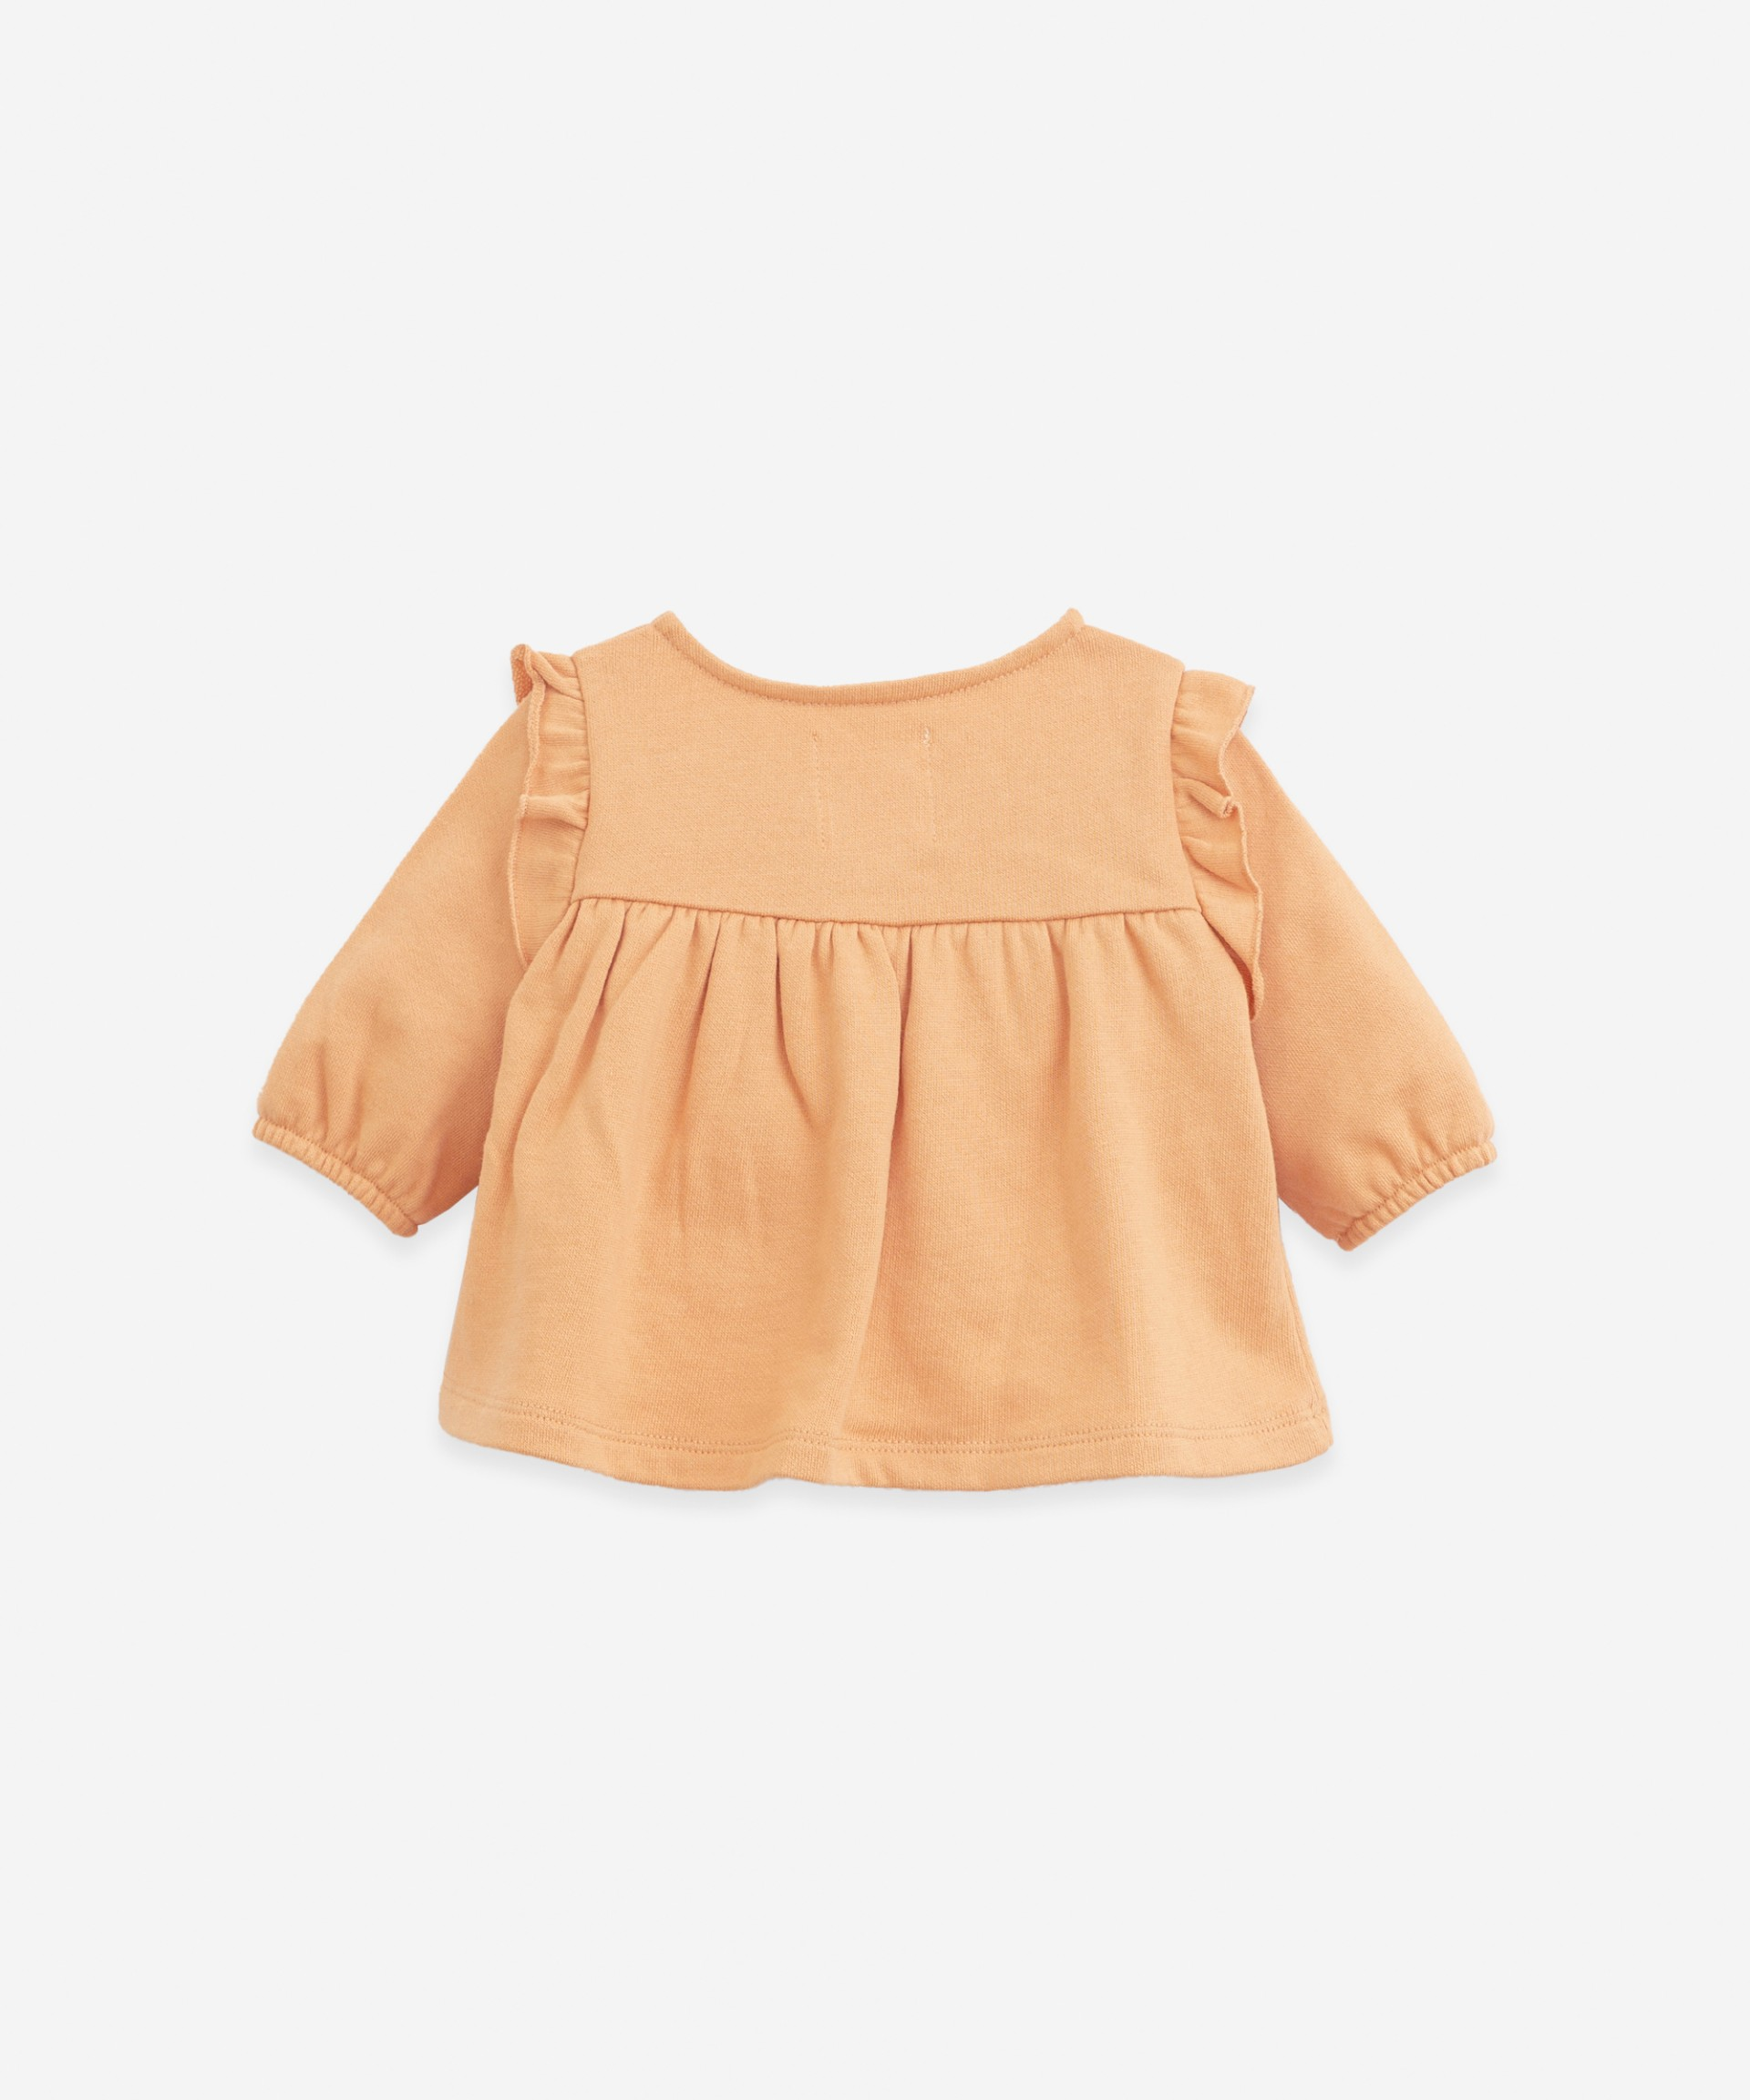 Jersey with elastic cuffs | Botany